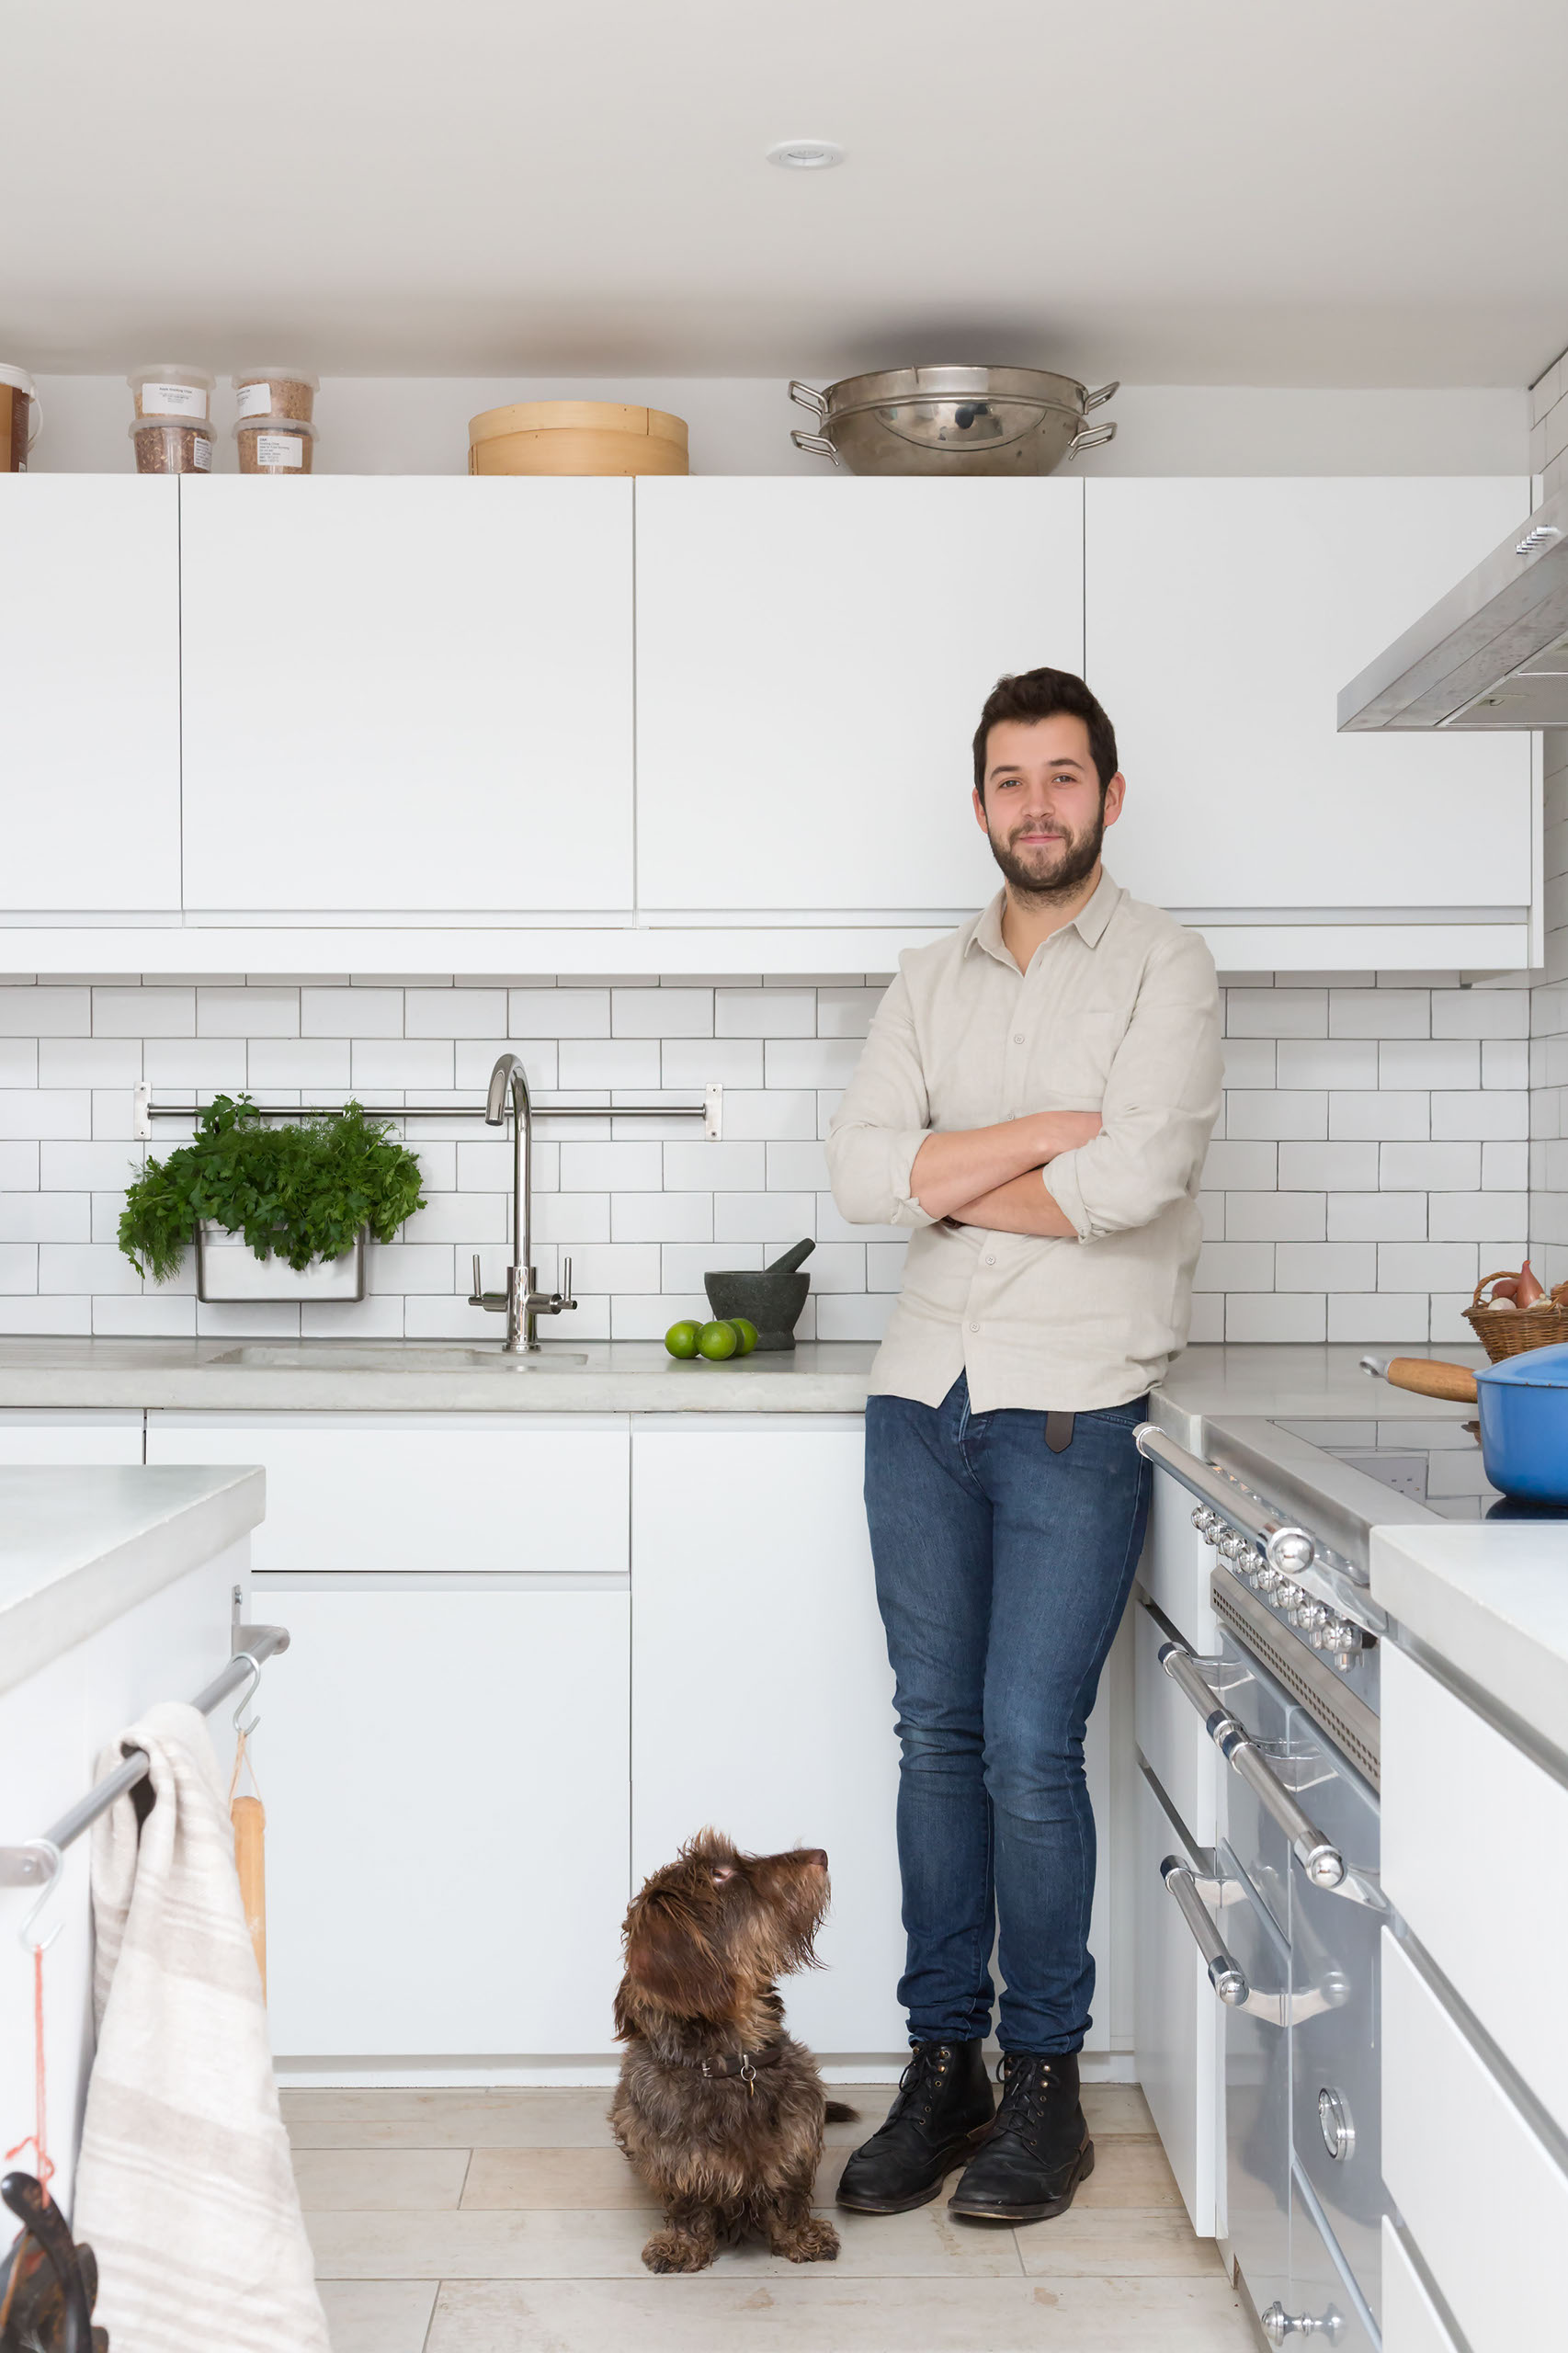 Paul Craig Interior Photographer London, People Photography, Chef and dog in kitchen